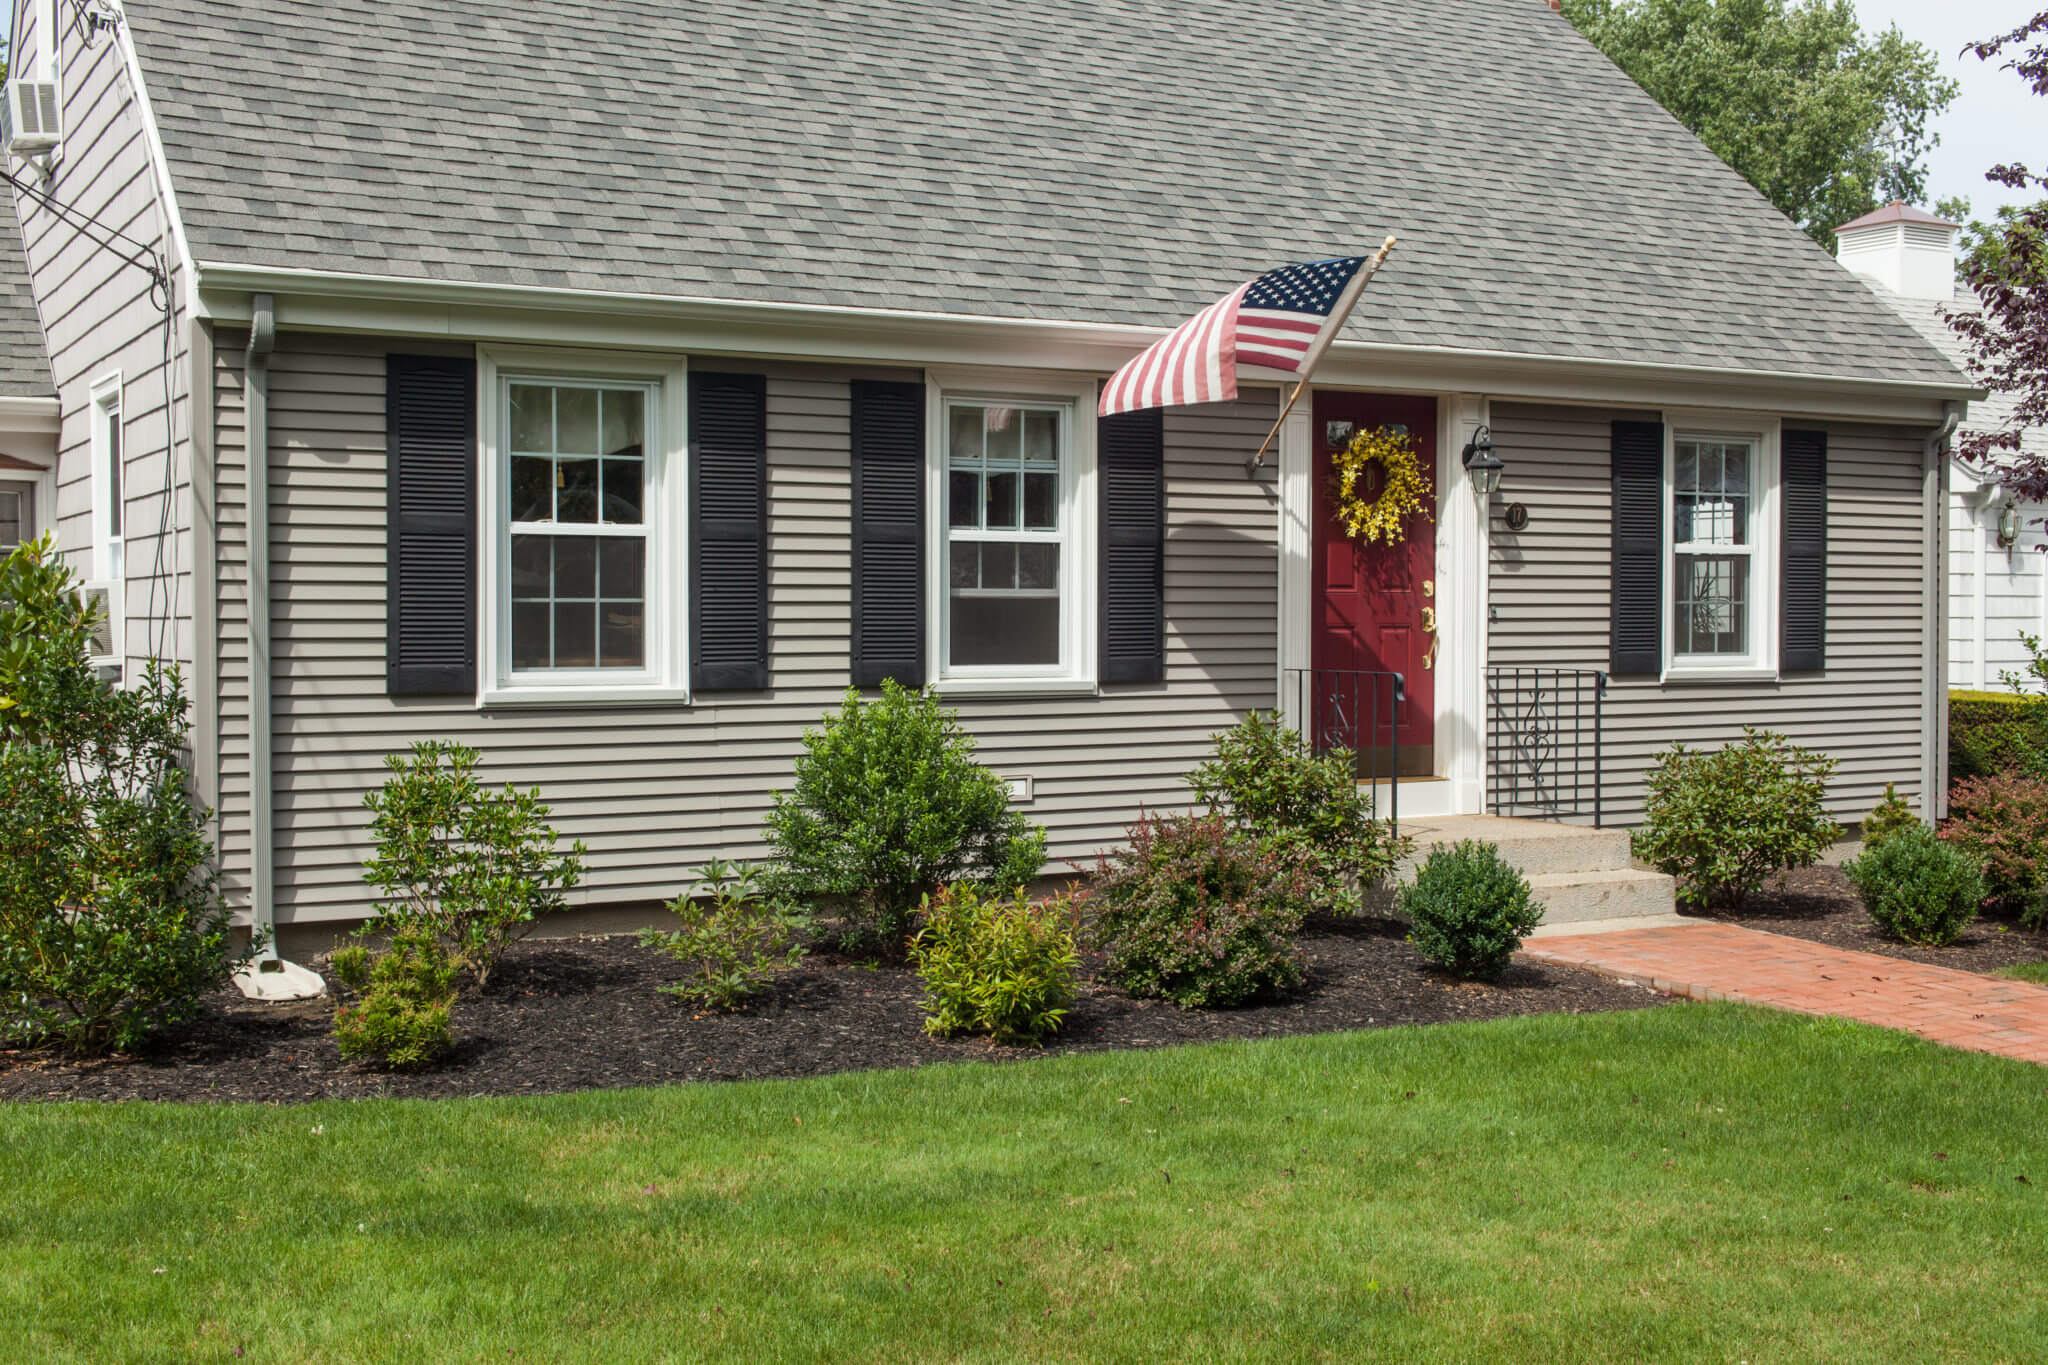 Roofing, Siding, & Windows Installed on RI Cape House by Marshall Building & Remodeling